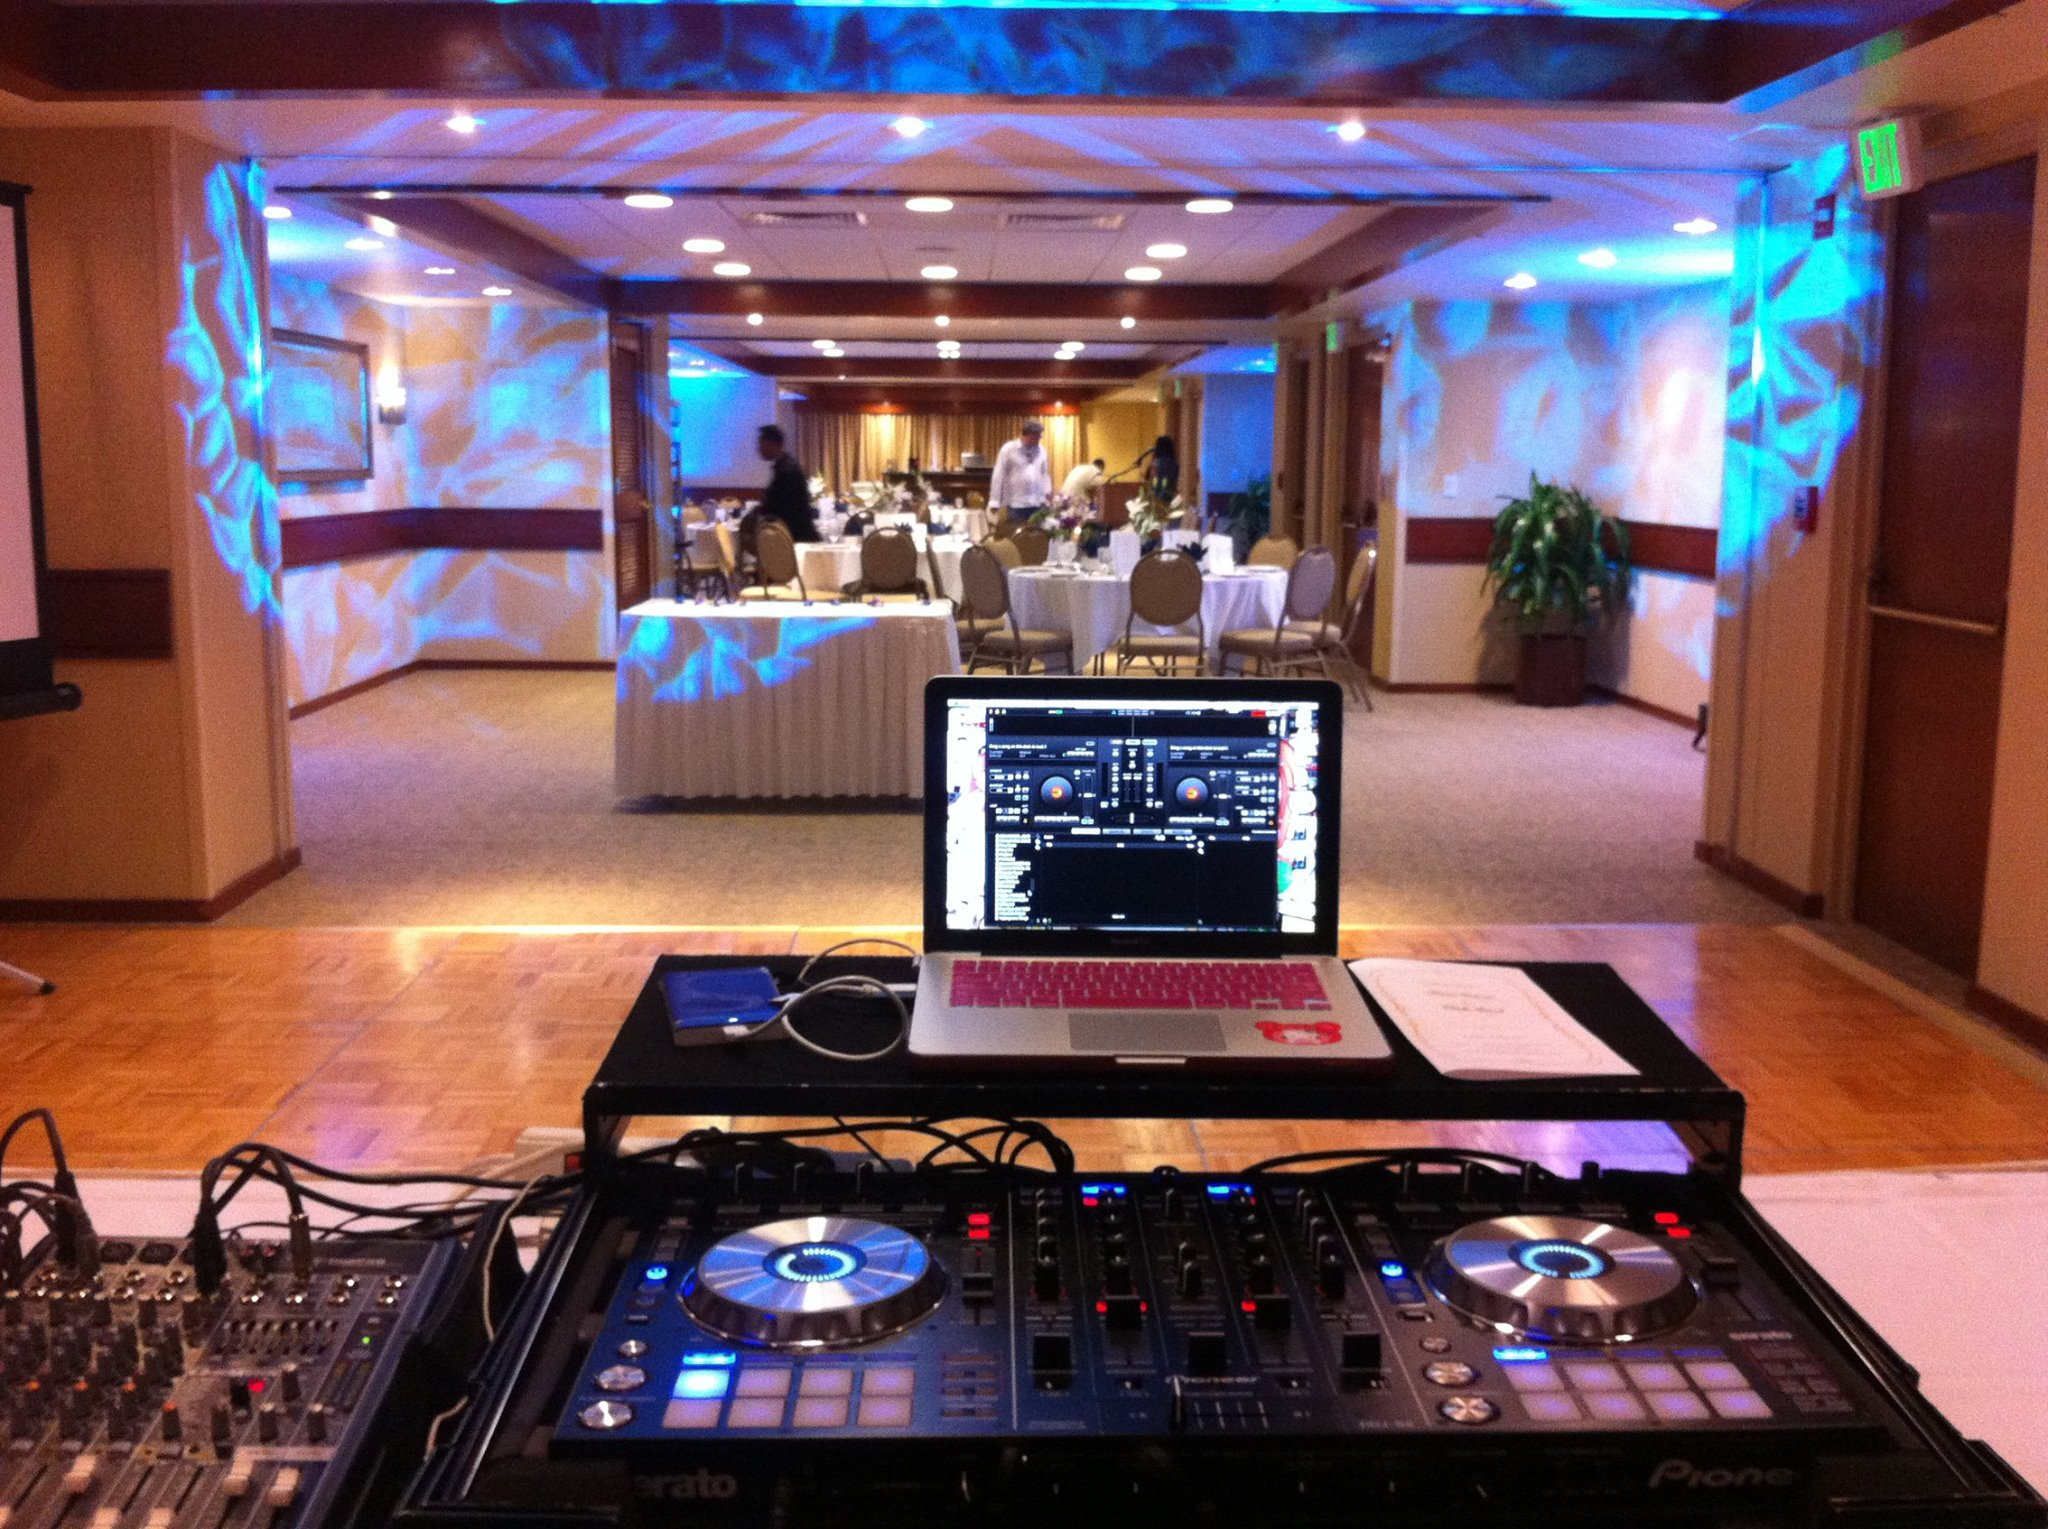 Dj and lighting set up.jpg